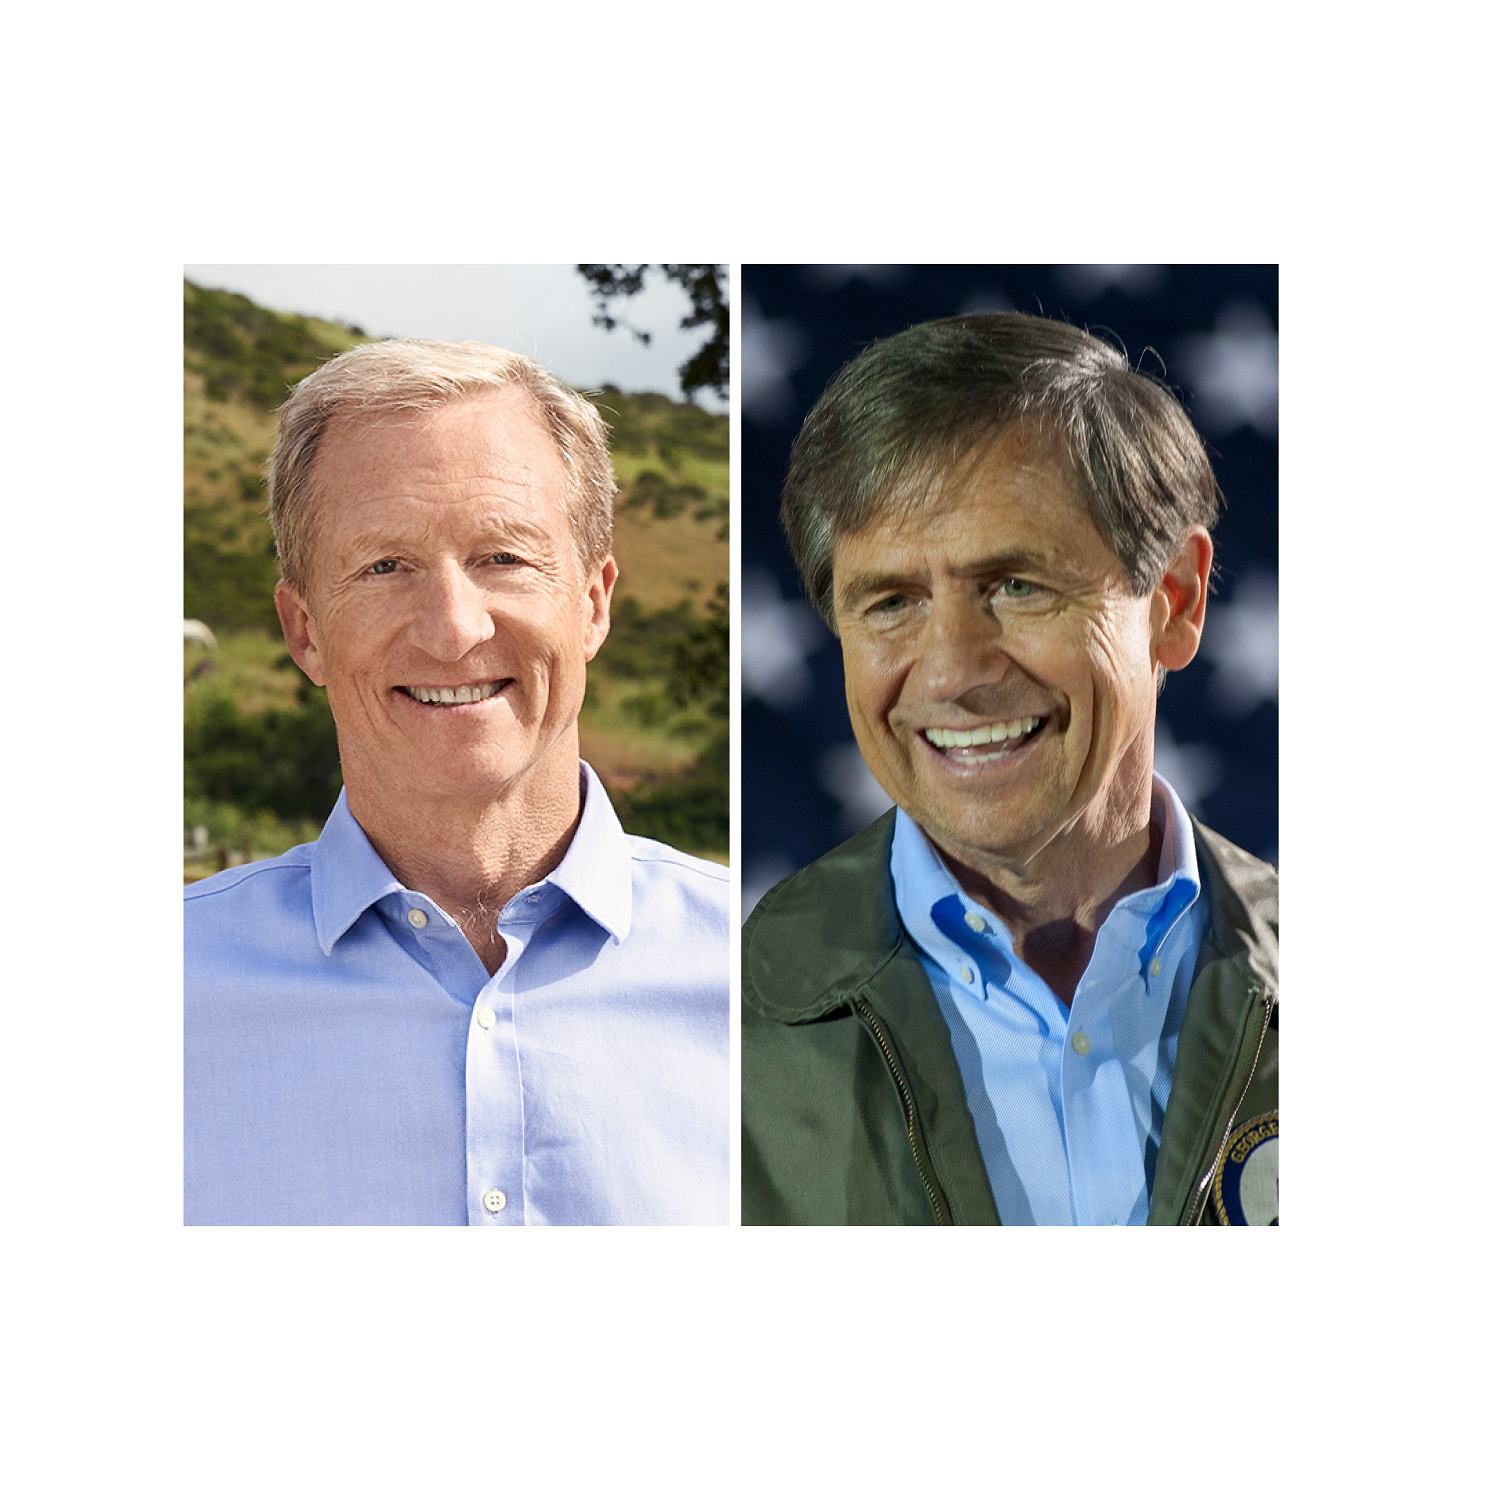 Tom Steyer (left) and Joe Sestak (right) are the newest Democratic 2020 presidential candidates.